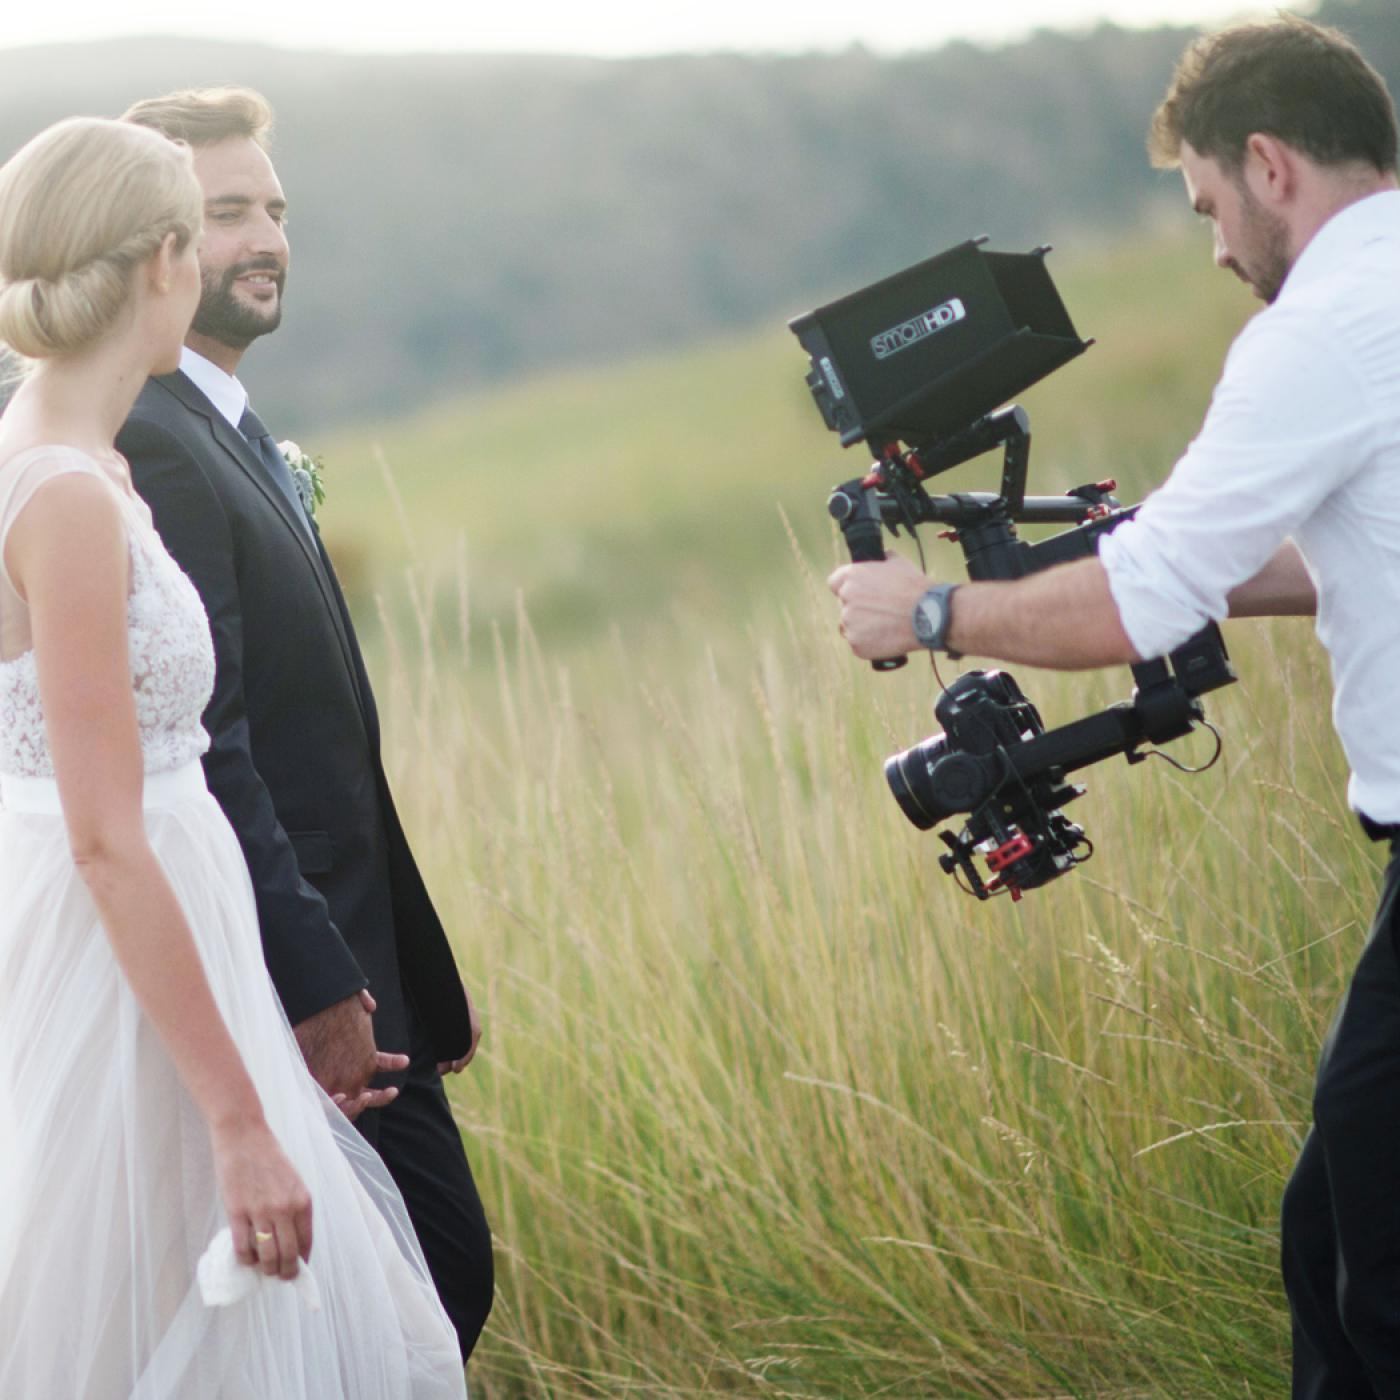 The Wedding Videography